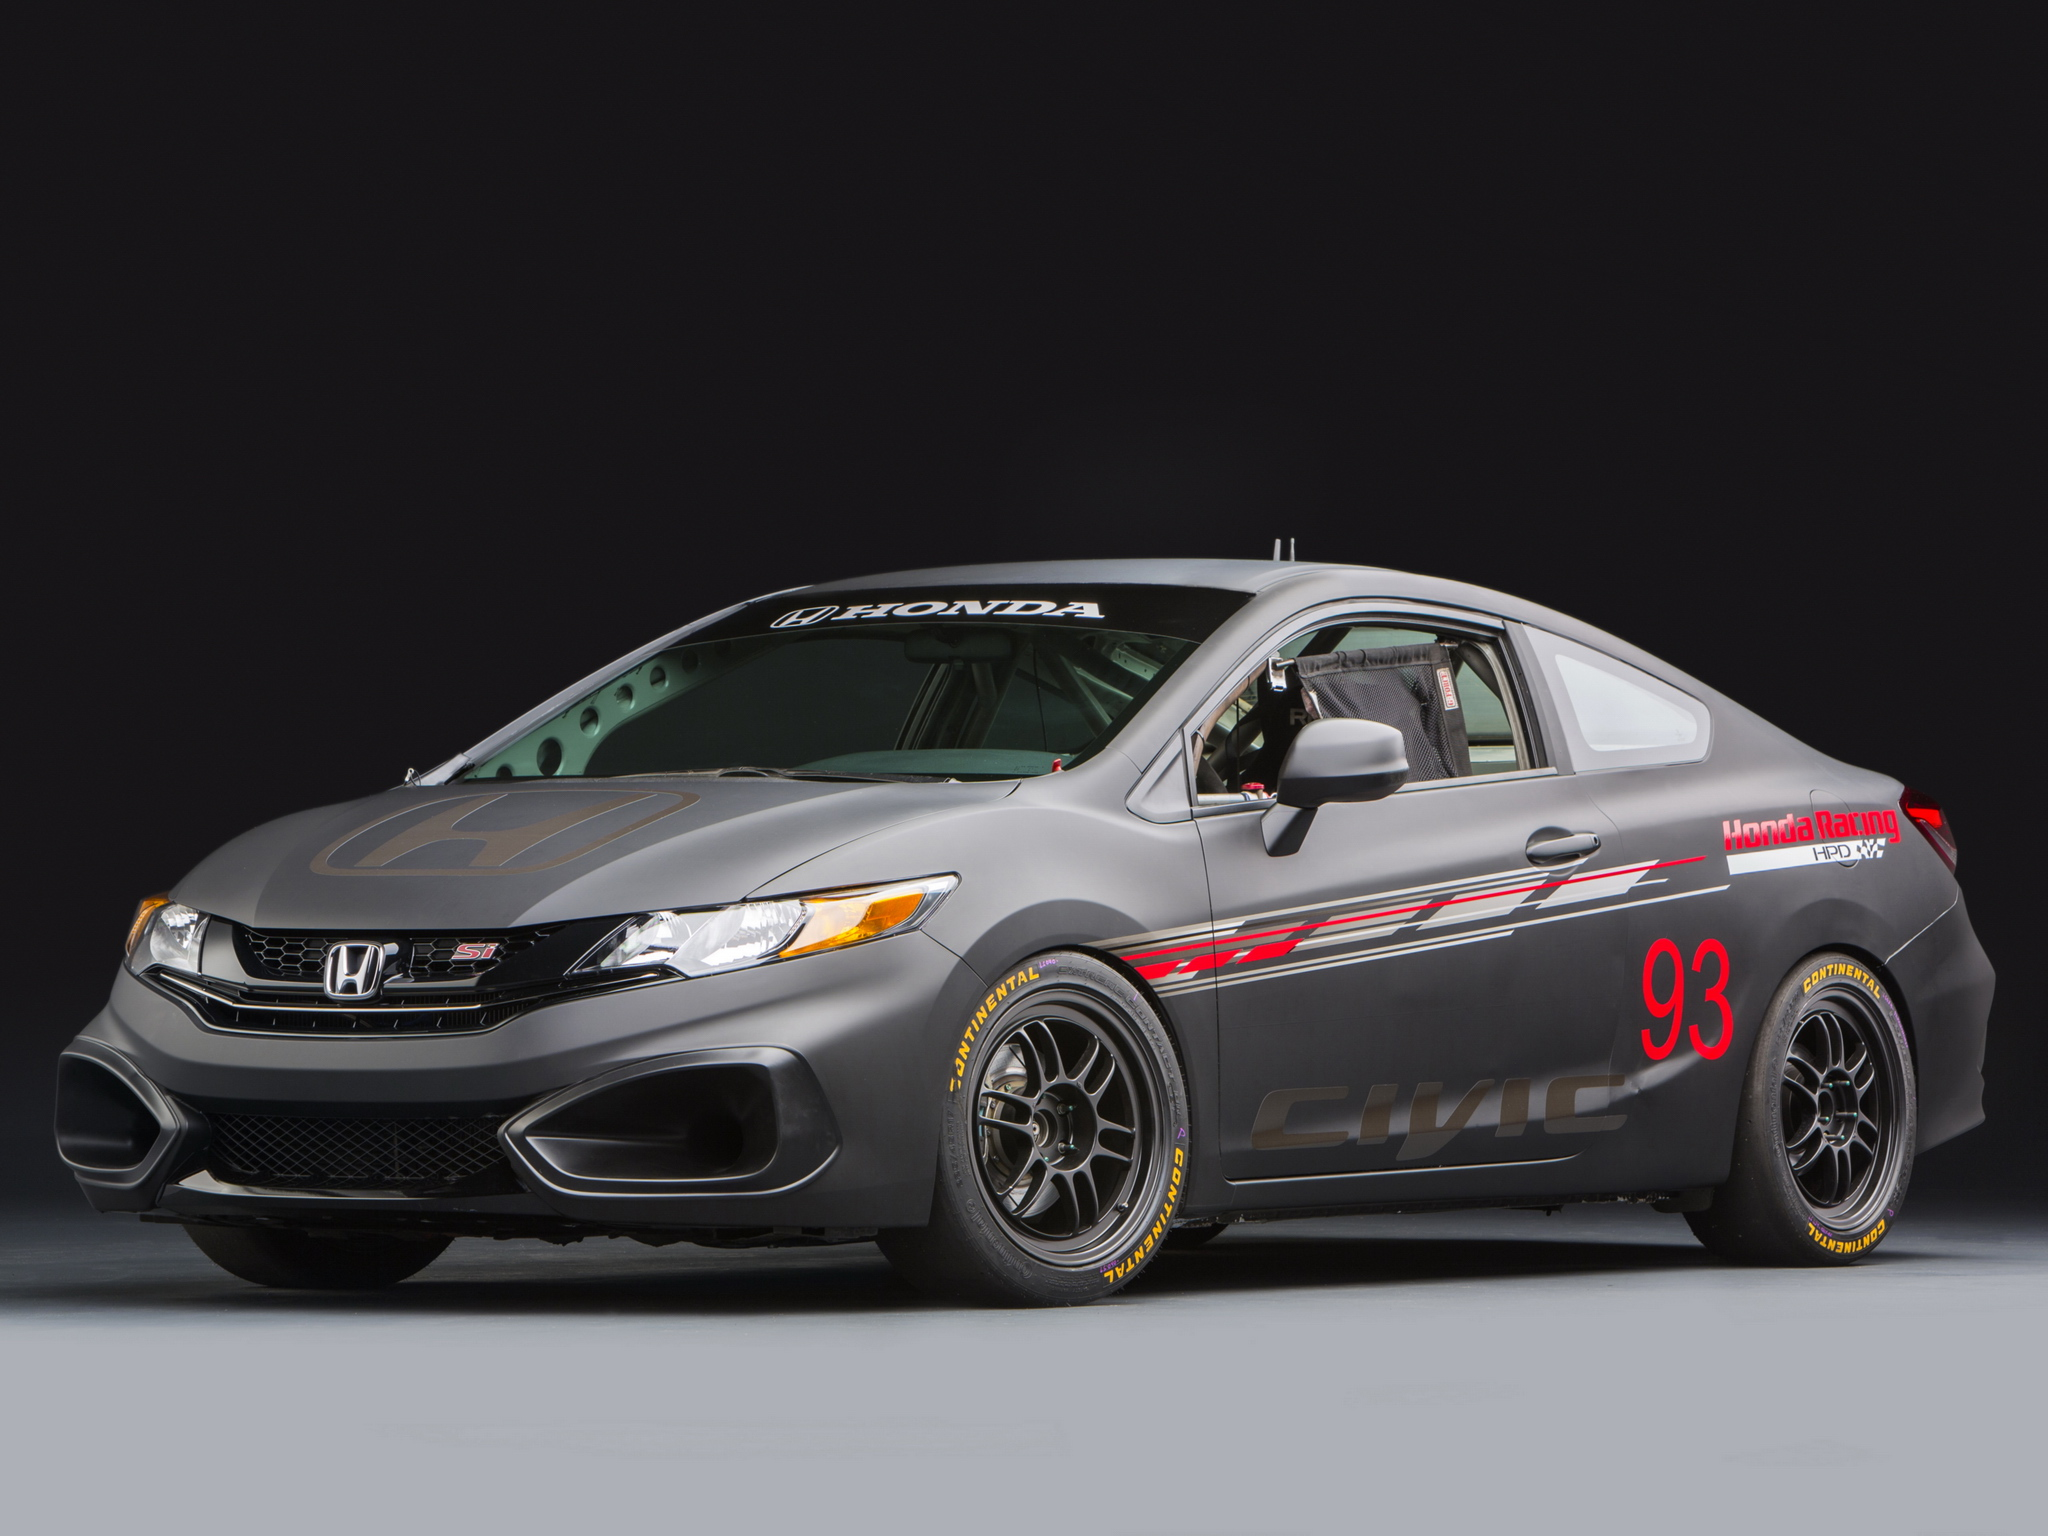 2013 honda civic si coupe race car by hpd tuning racing t for Honda civic race car